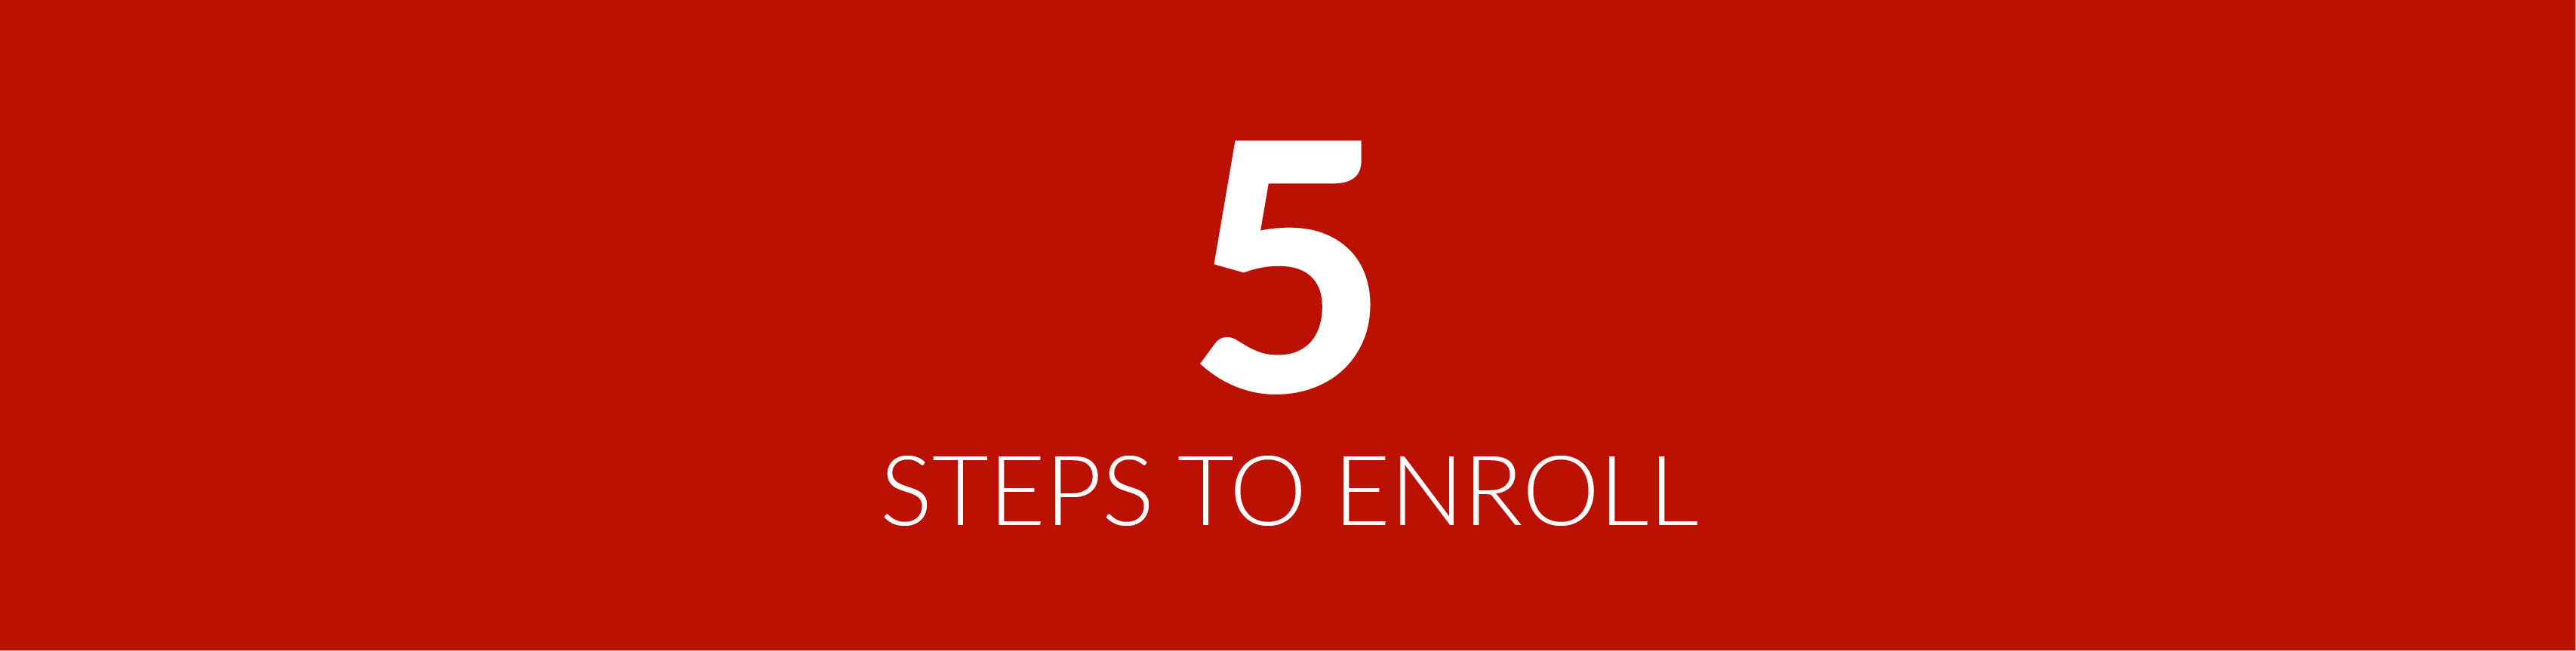 Five steps to enroll for spring courses at Donnelly College